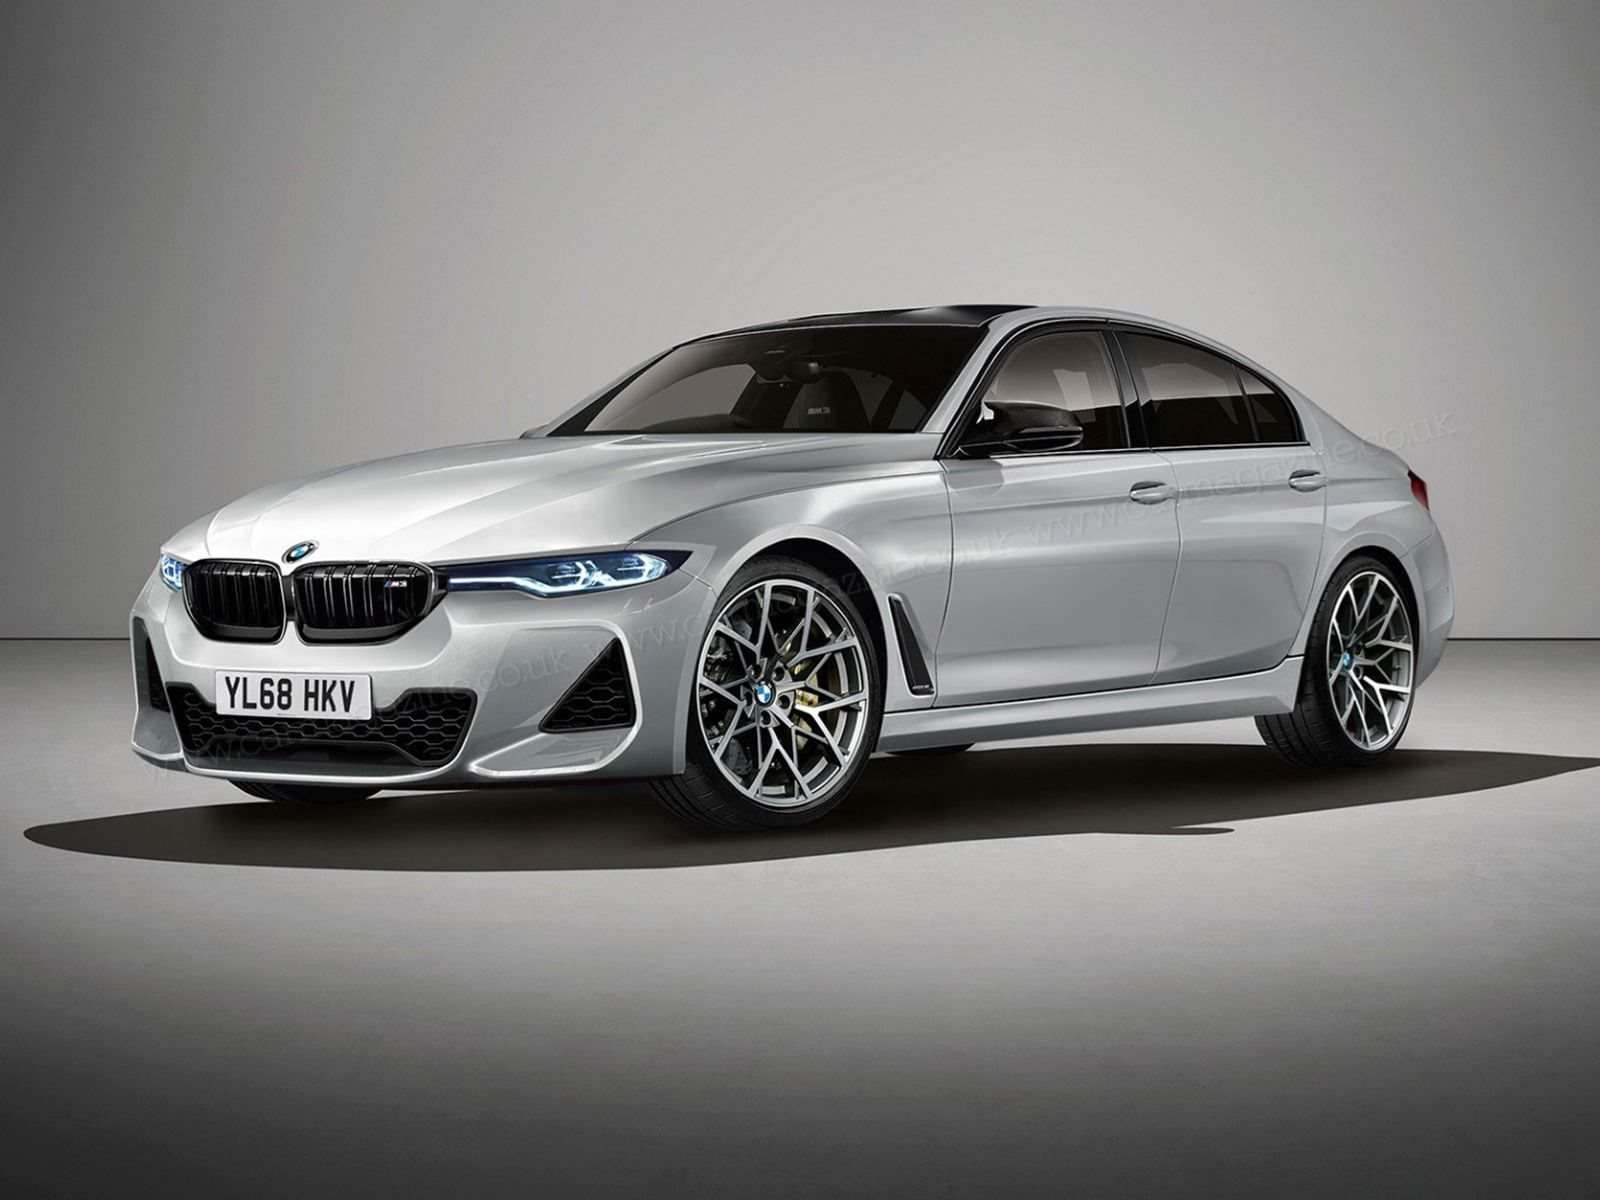 80 All New Bmw M4 Redesign New Concept for Bmw M4 Redesign